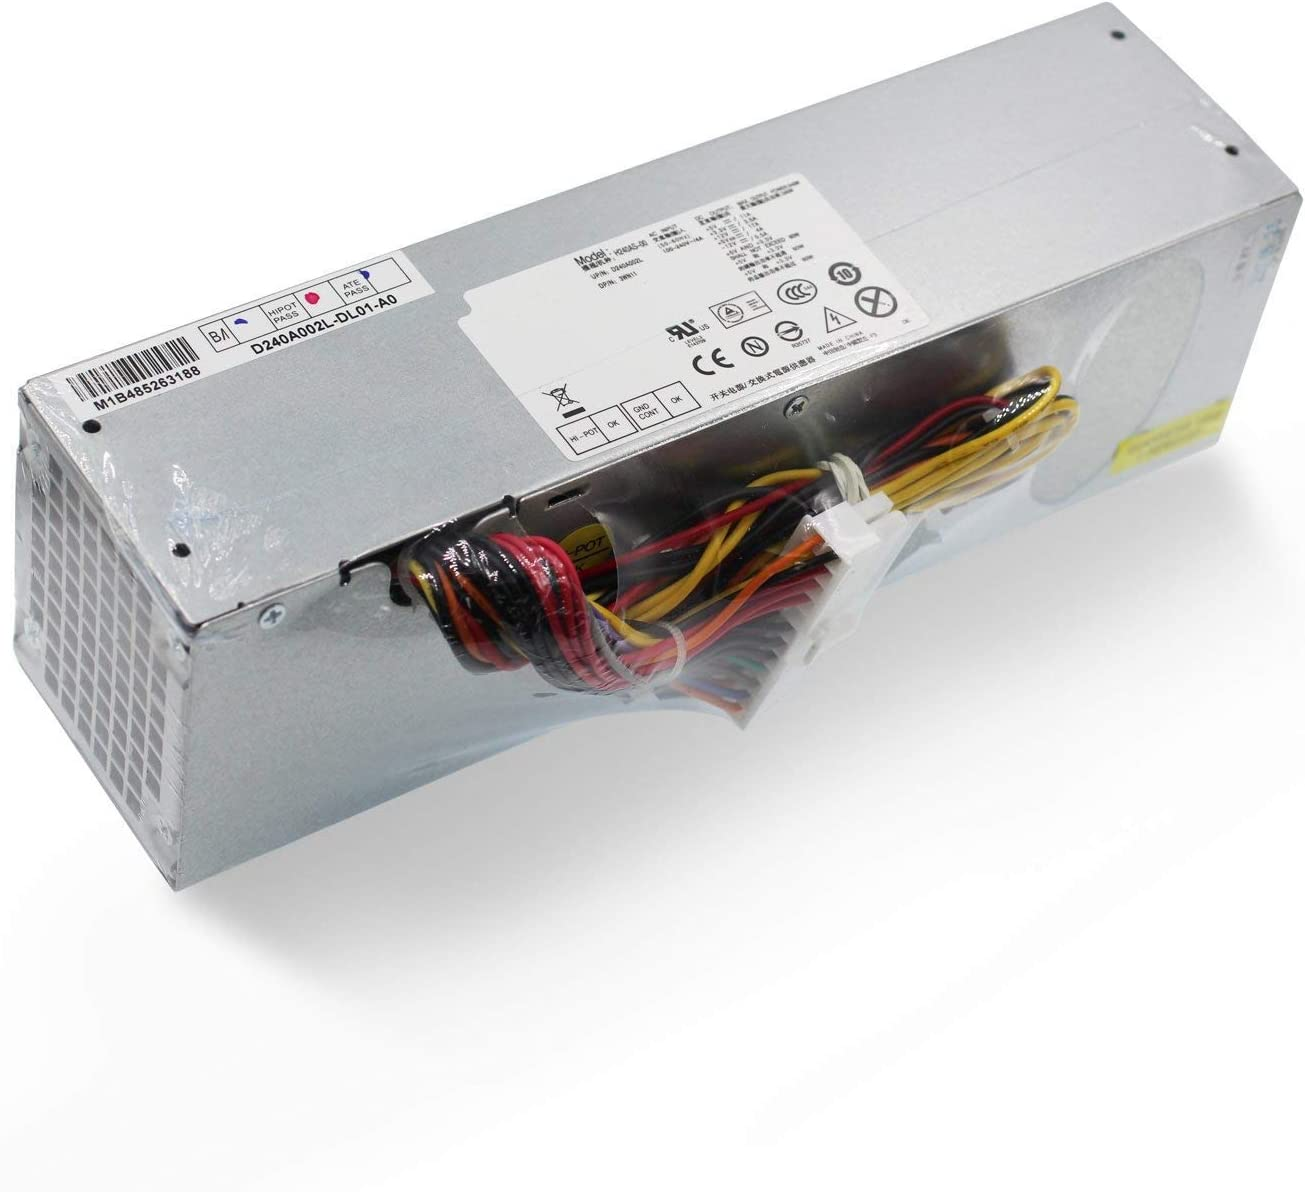 AooFit H240AS-00 240W Power Supply Compatible For Dell Optiplex 390 790 990 3010 7010 9010 Small Form Factor Systems 3WN11 PH3C2 2TXYM 709MT L240AS-00 H240ES-00 D240ES-00 AC240AS-00